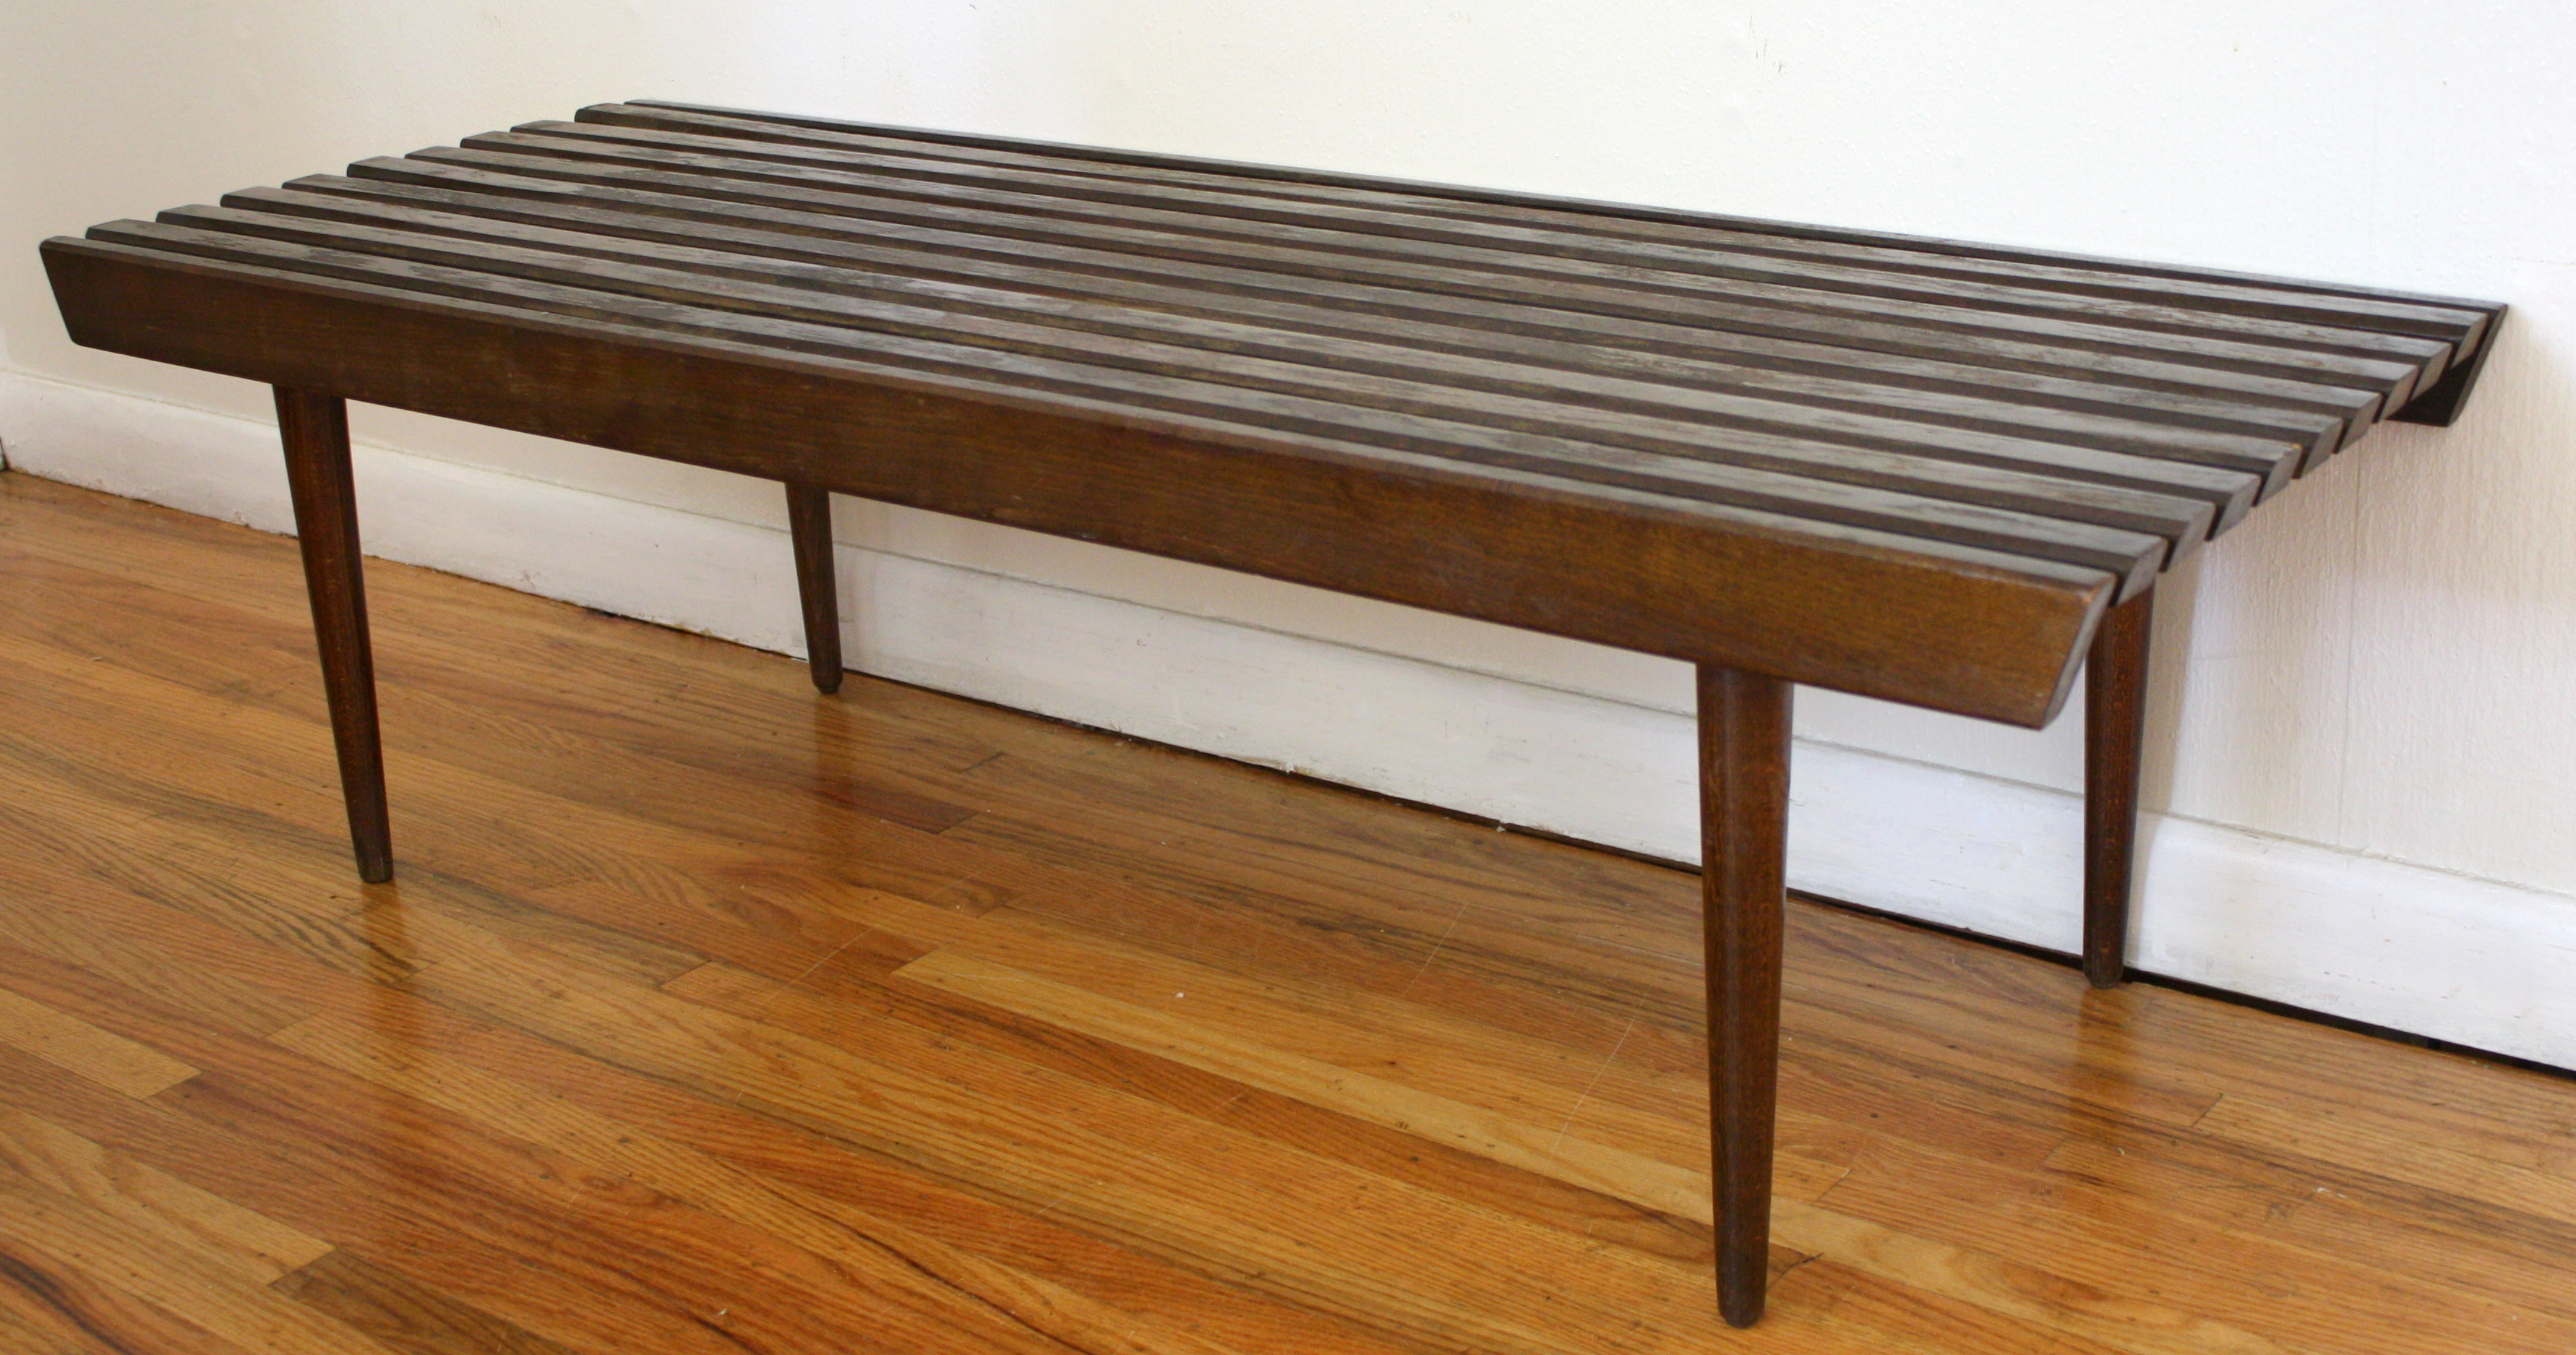 Mcm Dark Slatted Wood Bench 2 Picked Vintage